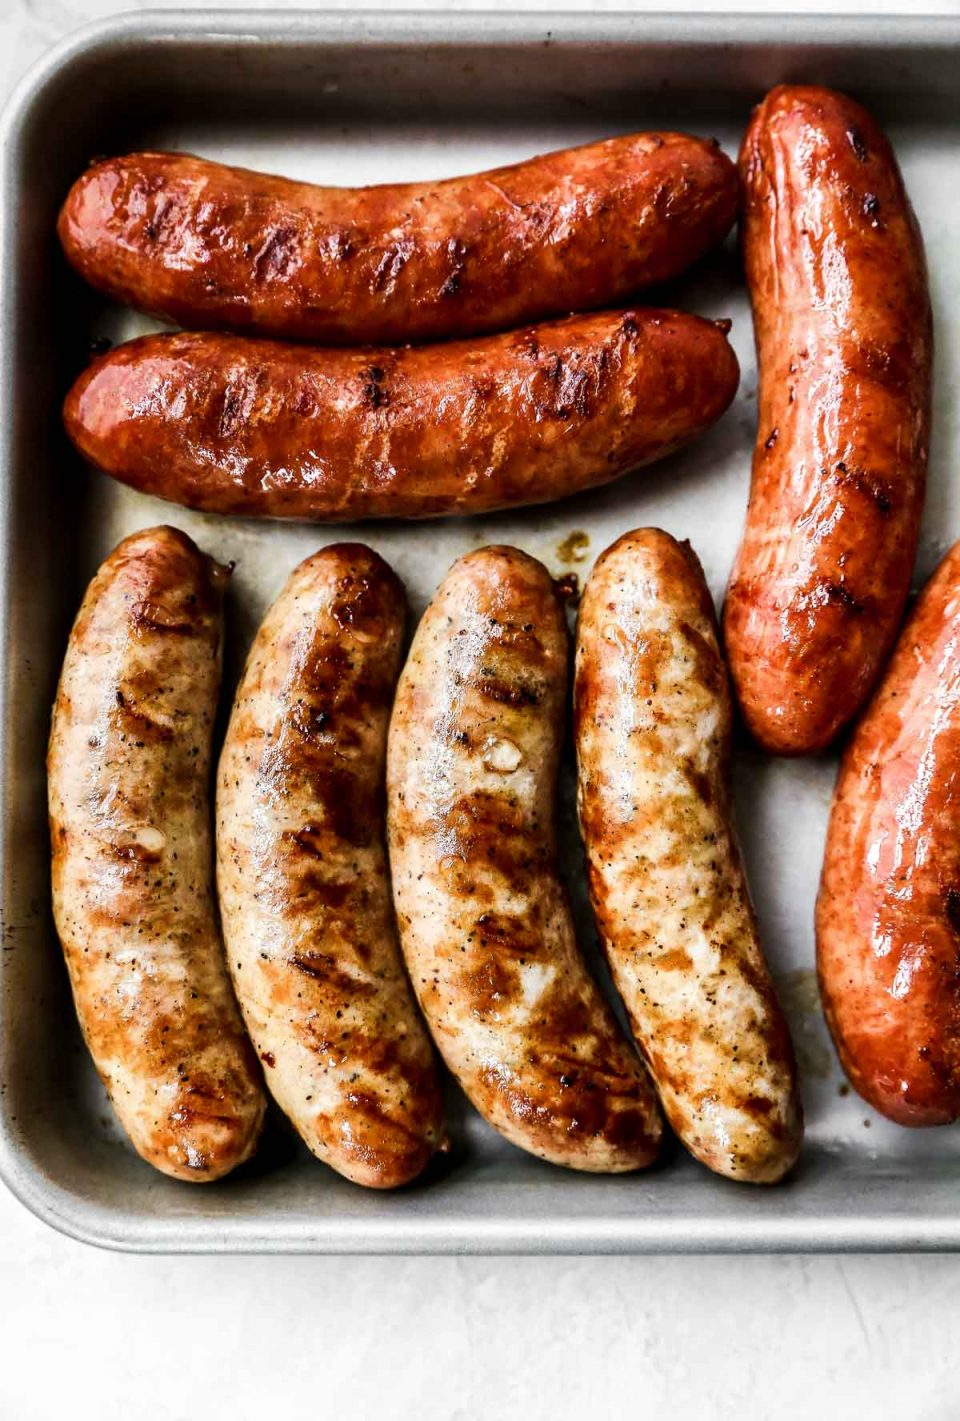 Grilled sausage links on a small baking sheet.